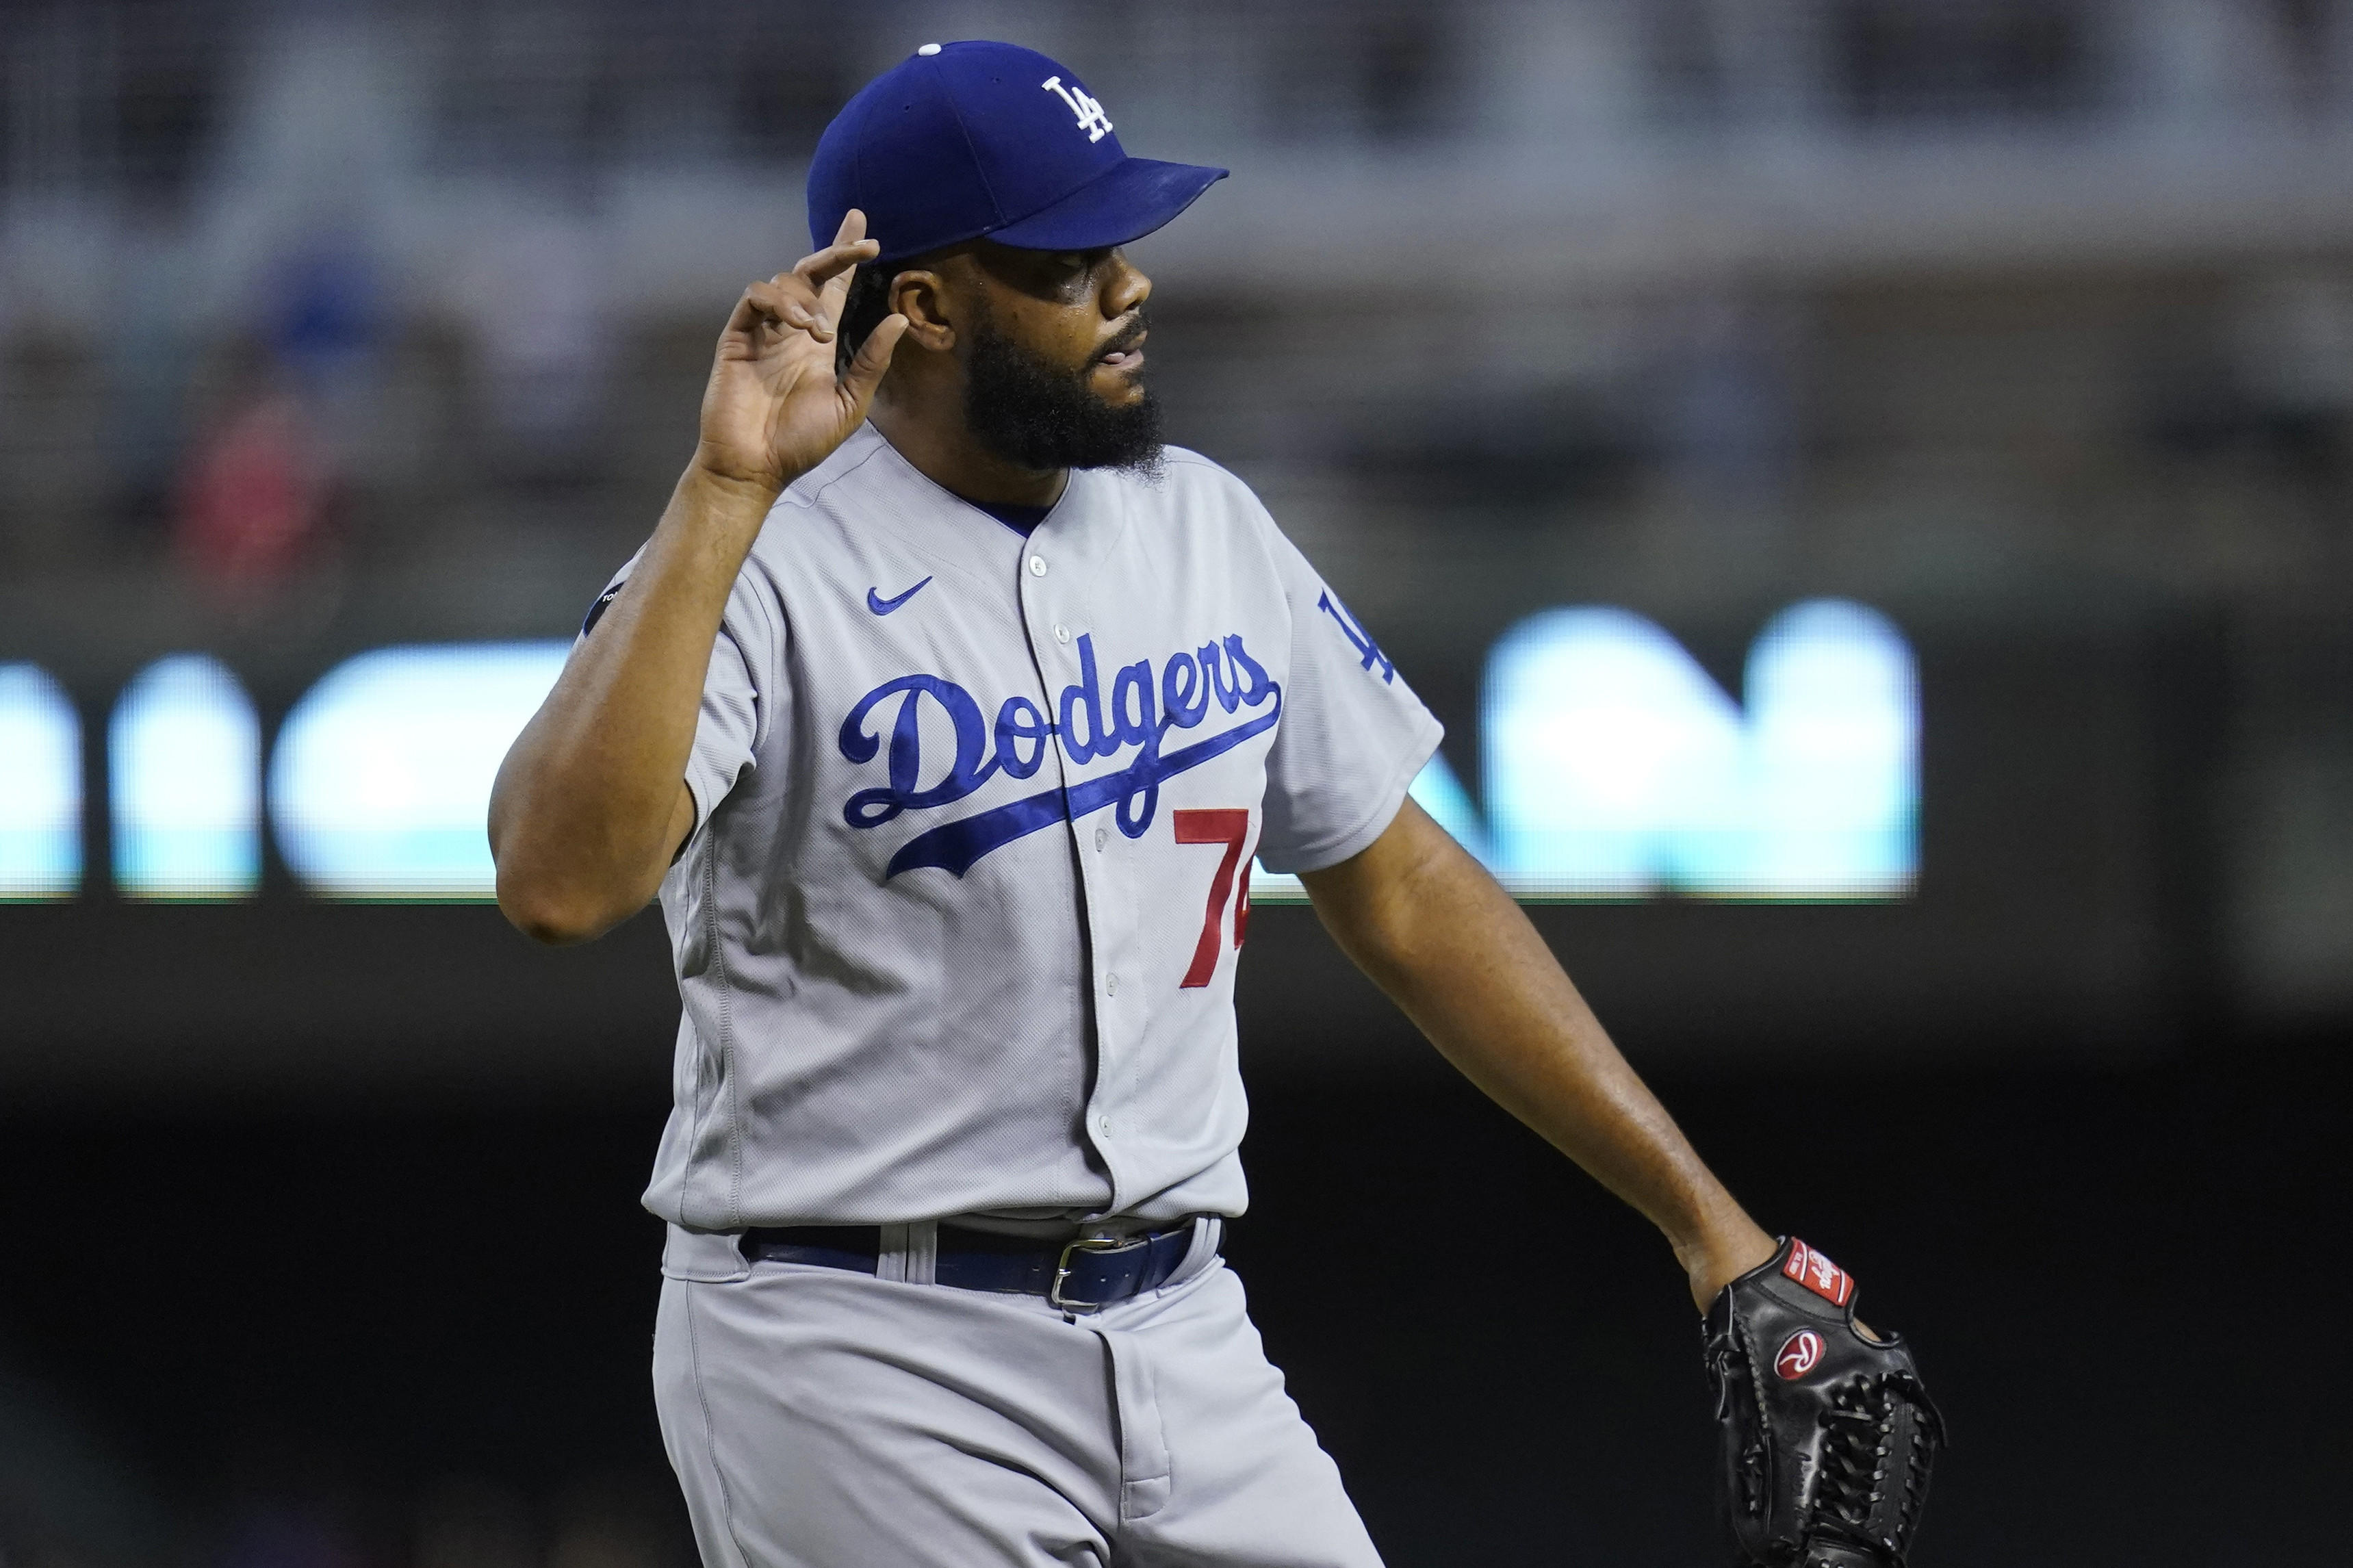 Dodgers' Kenley Jansen Says He Felt 'Insulted' by 2021 MLB All-Star Game Snub